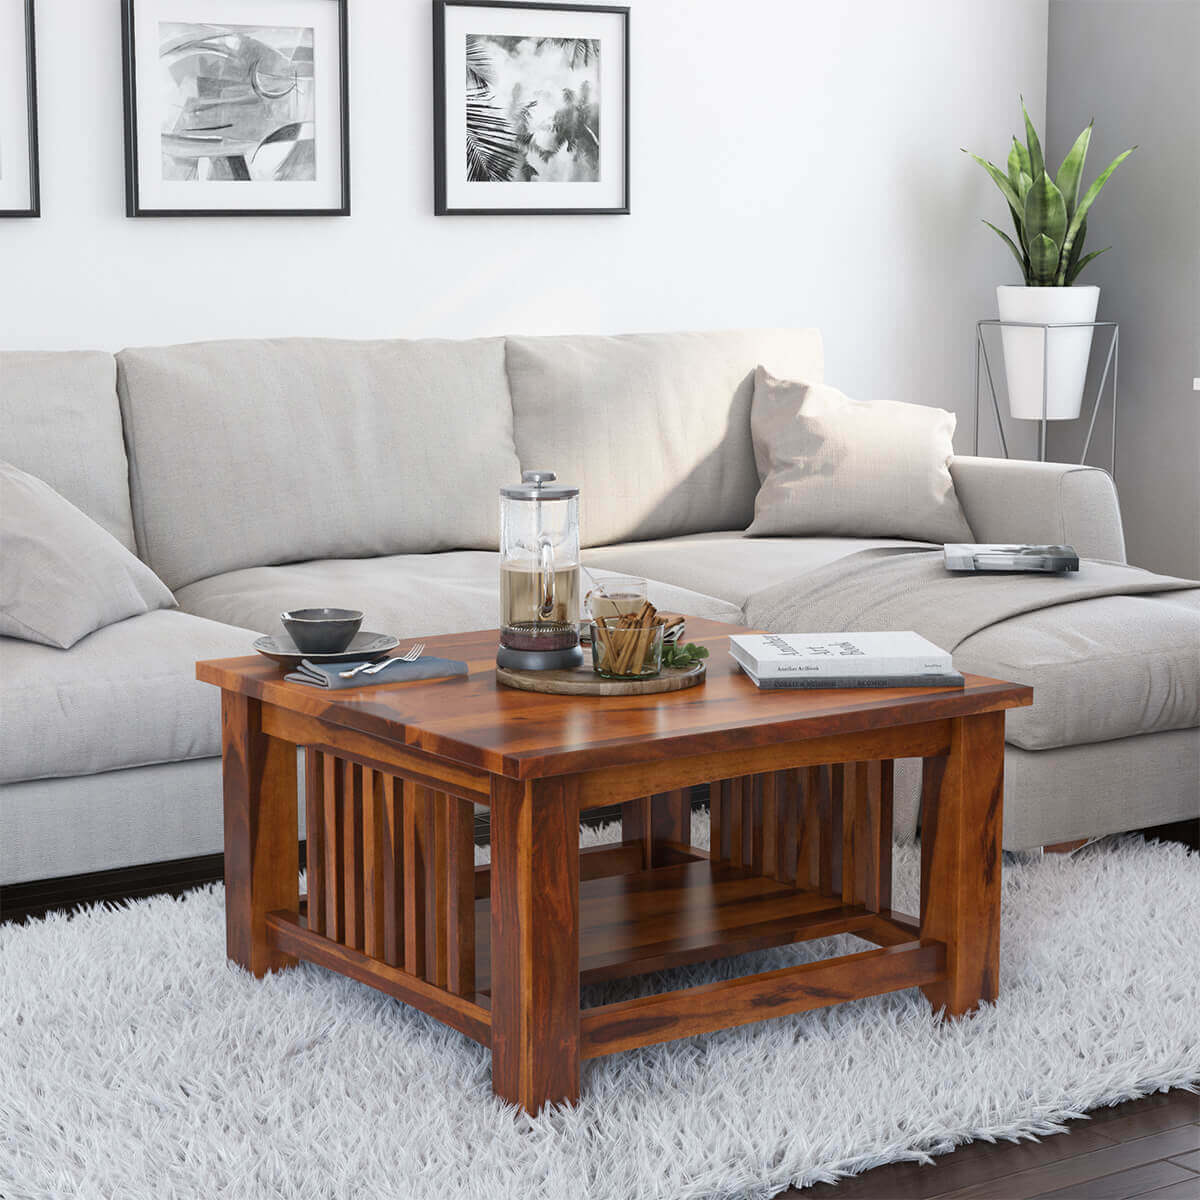 Rustic solid wood square coffee table furniture Rustic wooden coffee tables